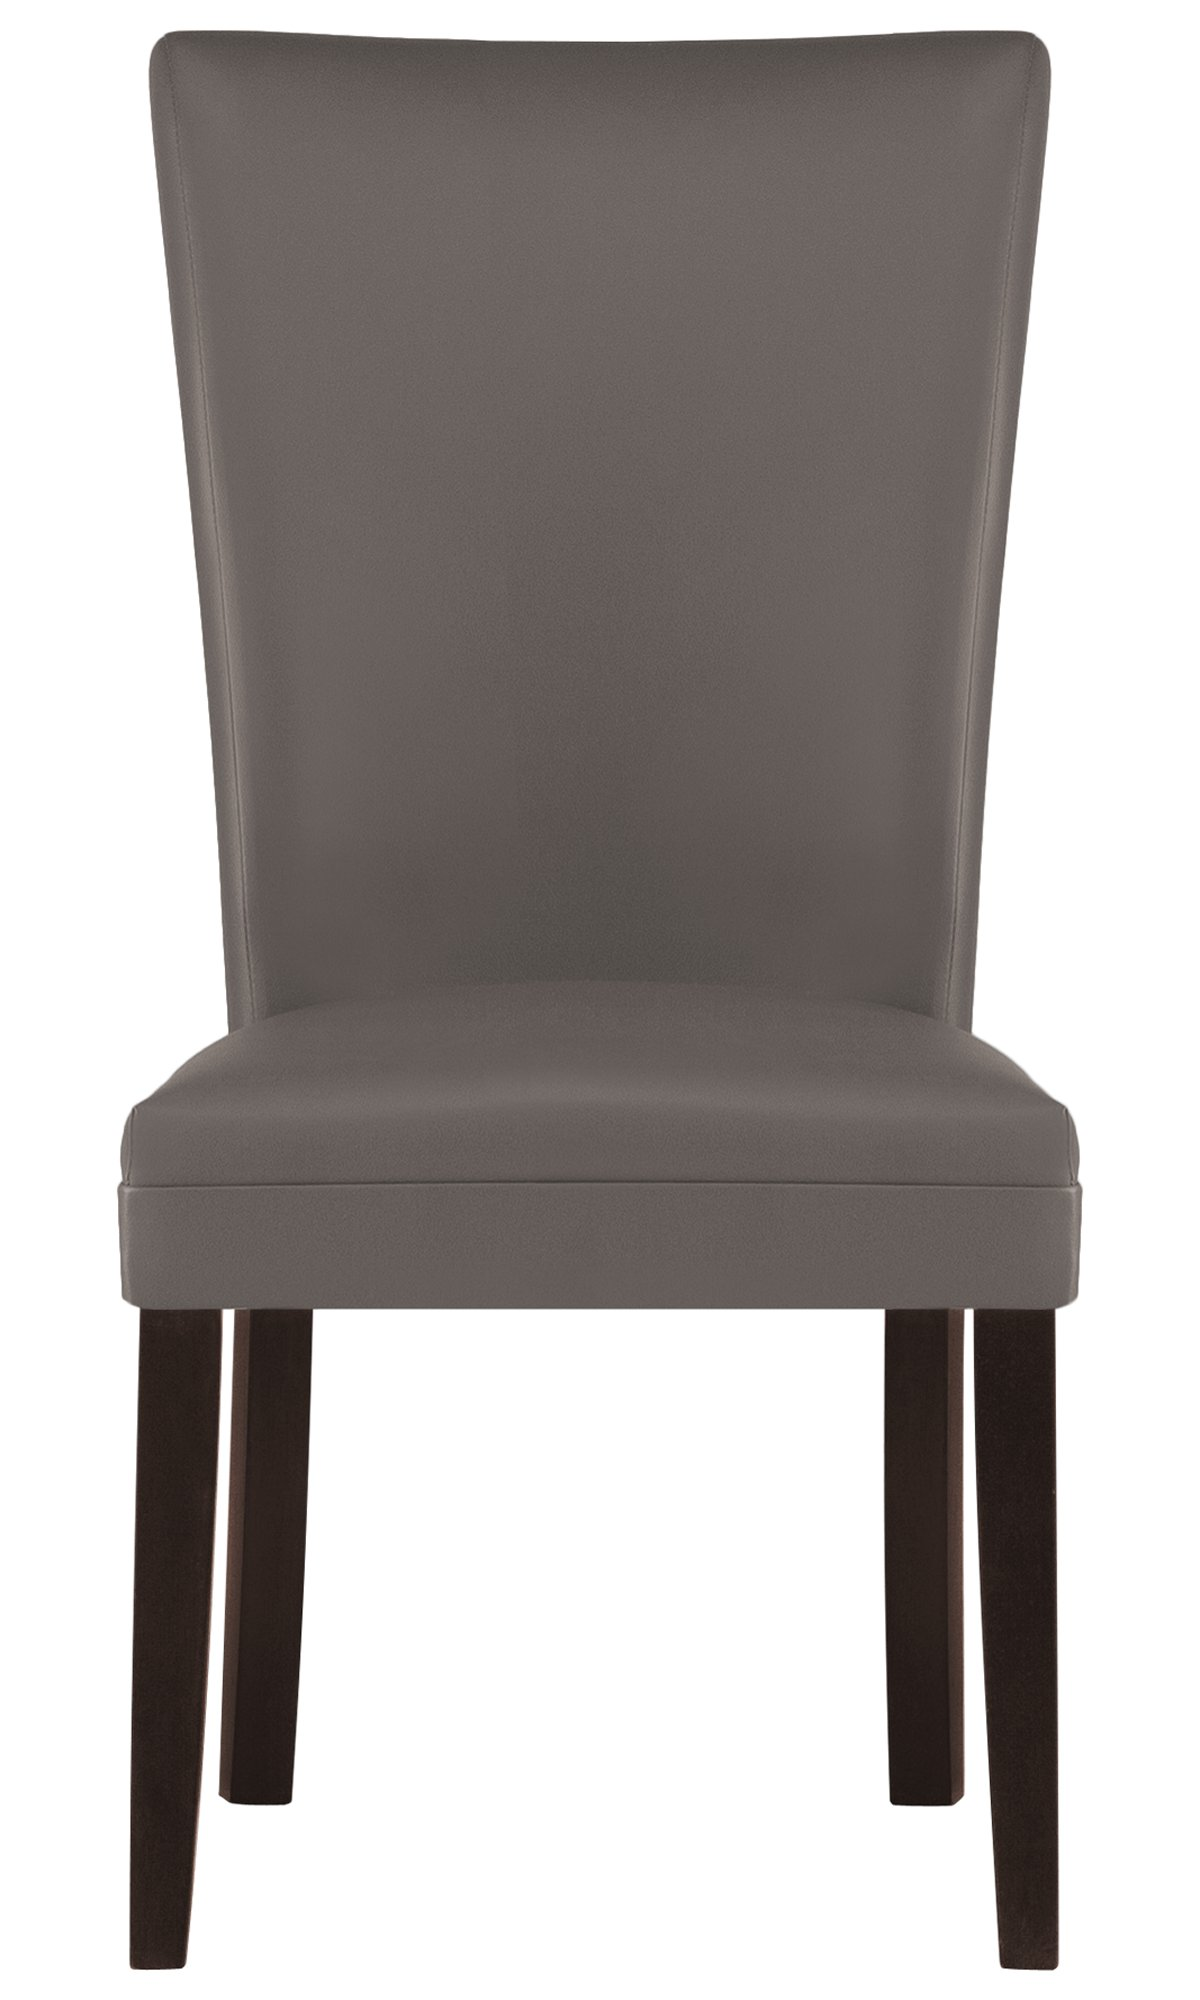 Delano Dark Gray Bonded Leather Bonded Leather Side Chair